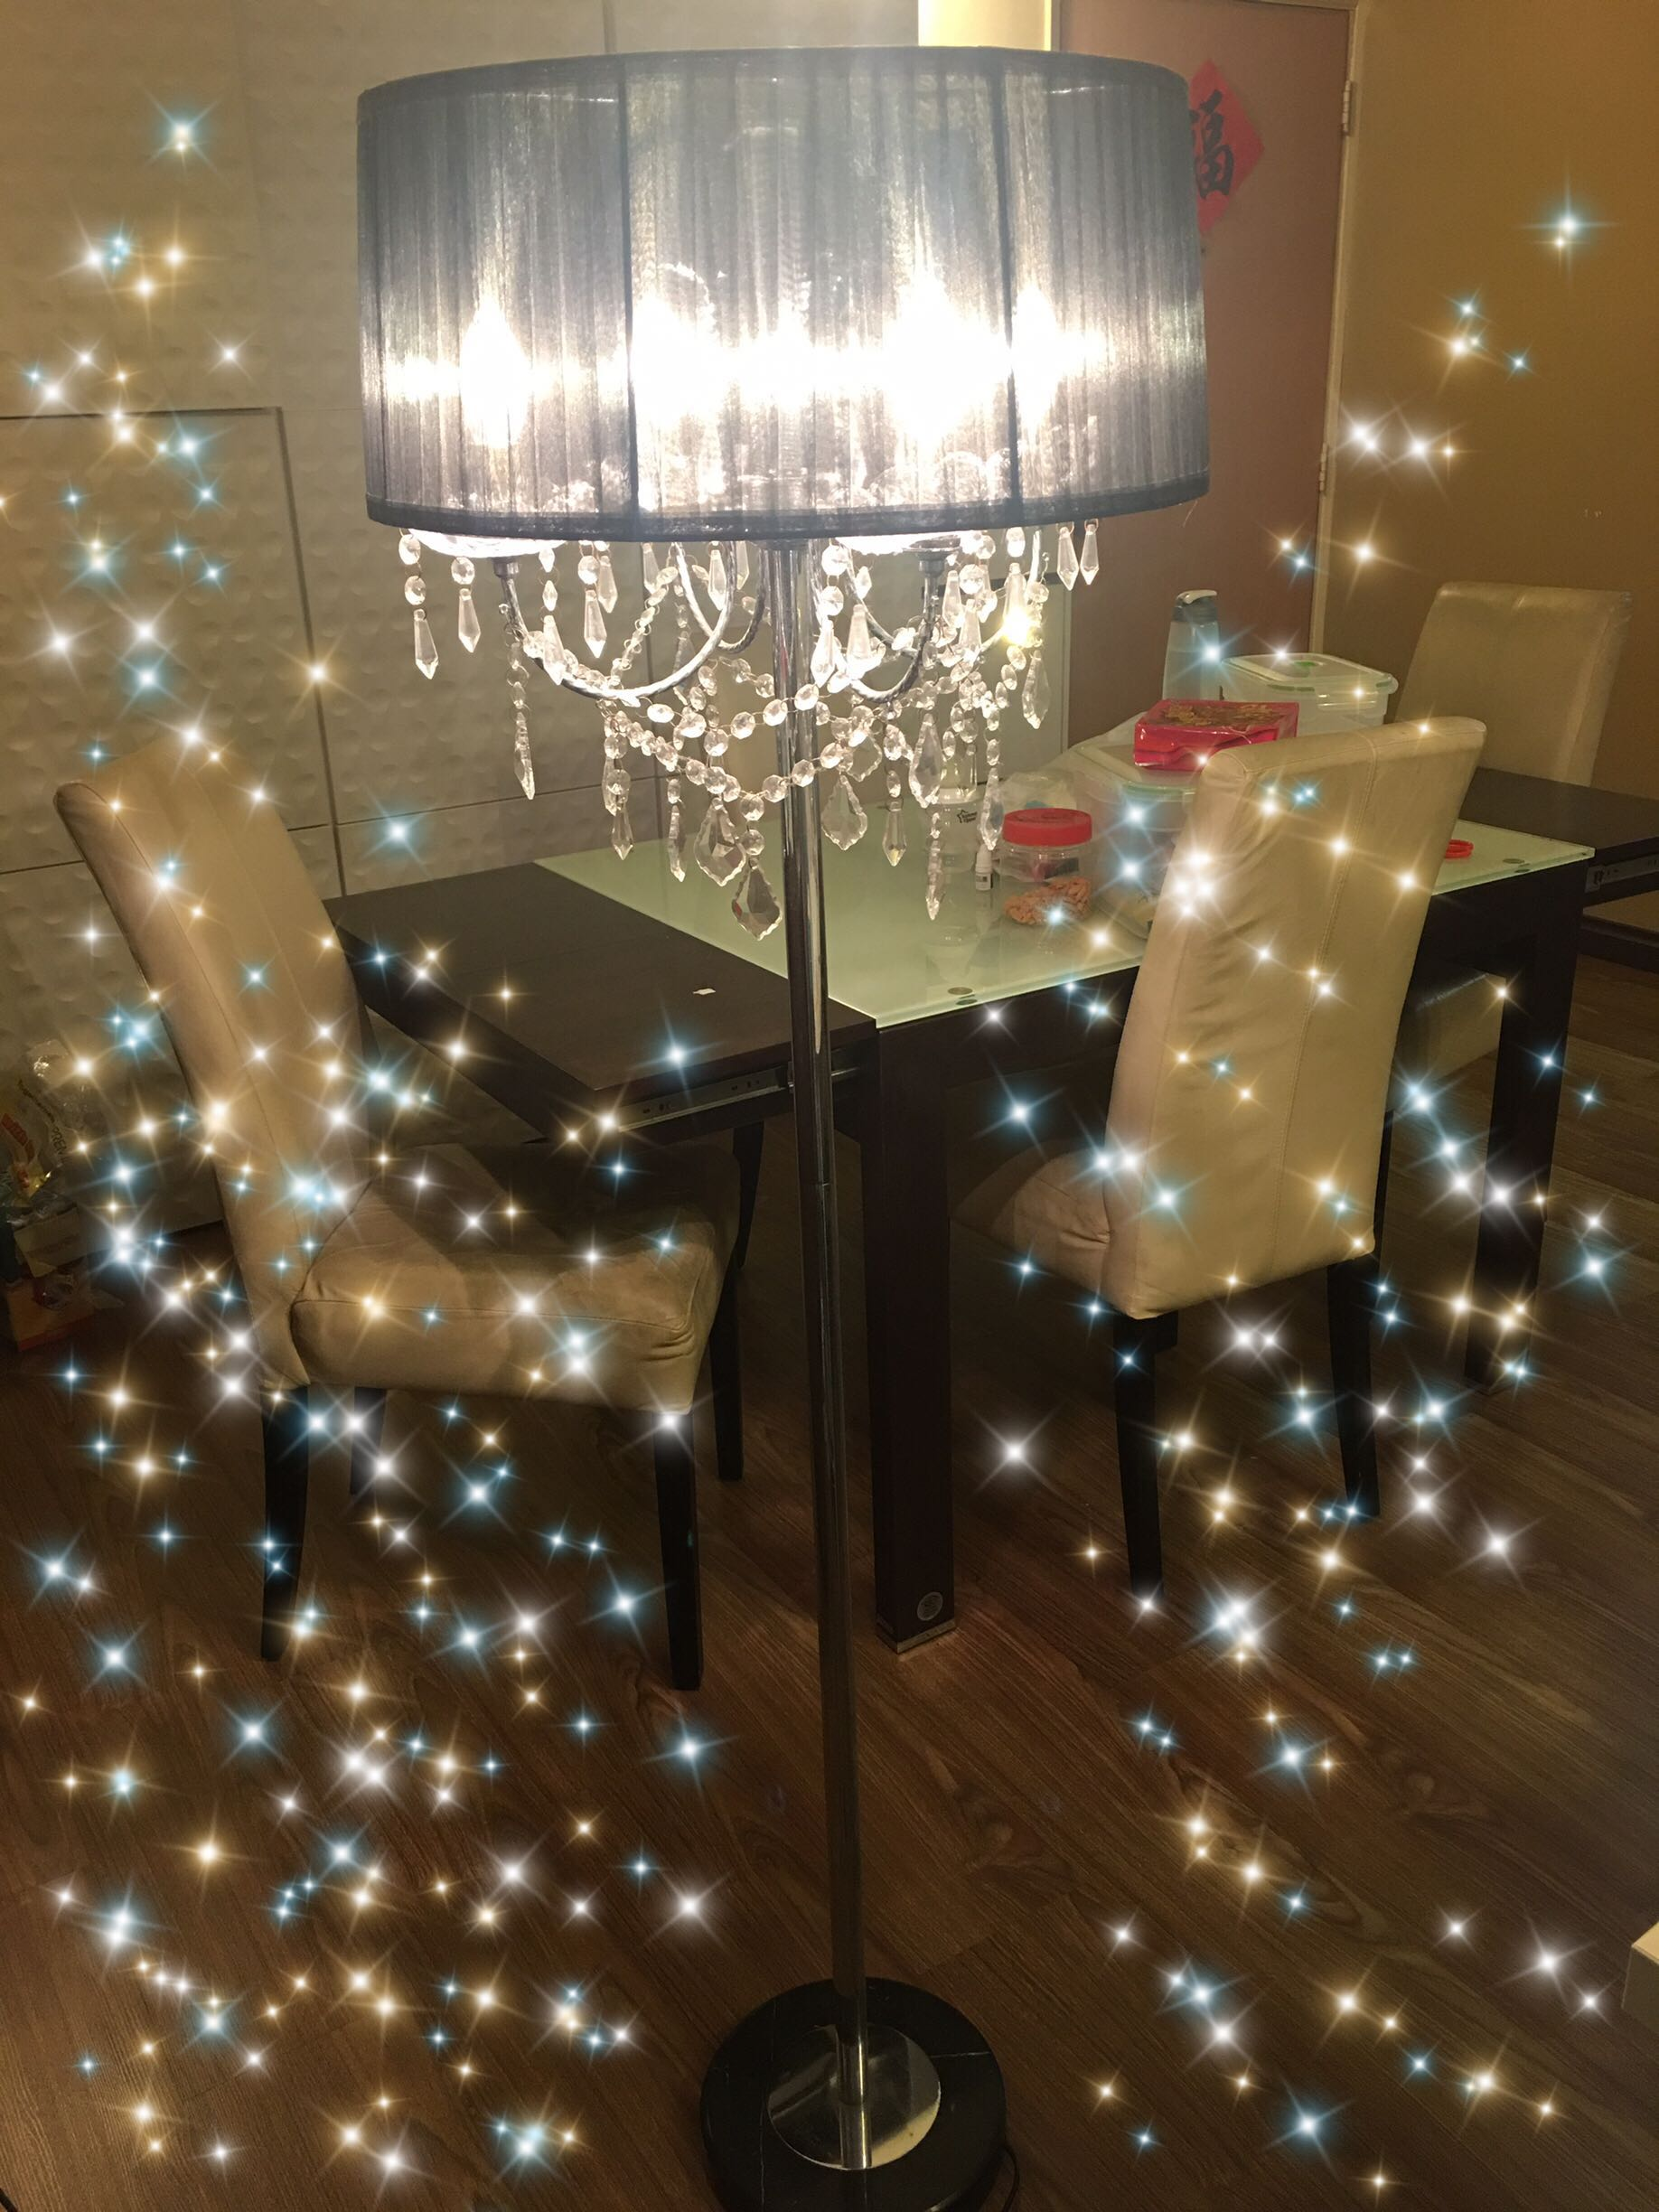 Candle crystal chandelier floor lamp stand